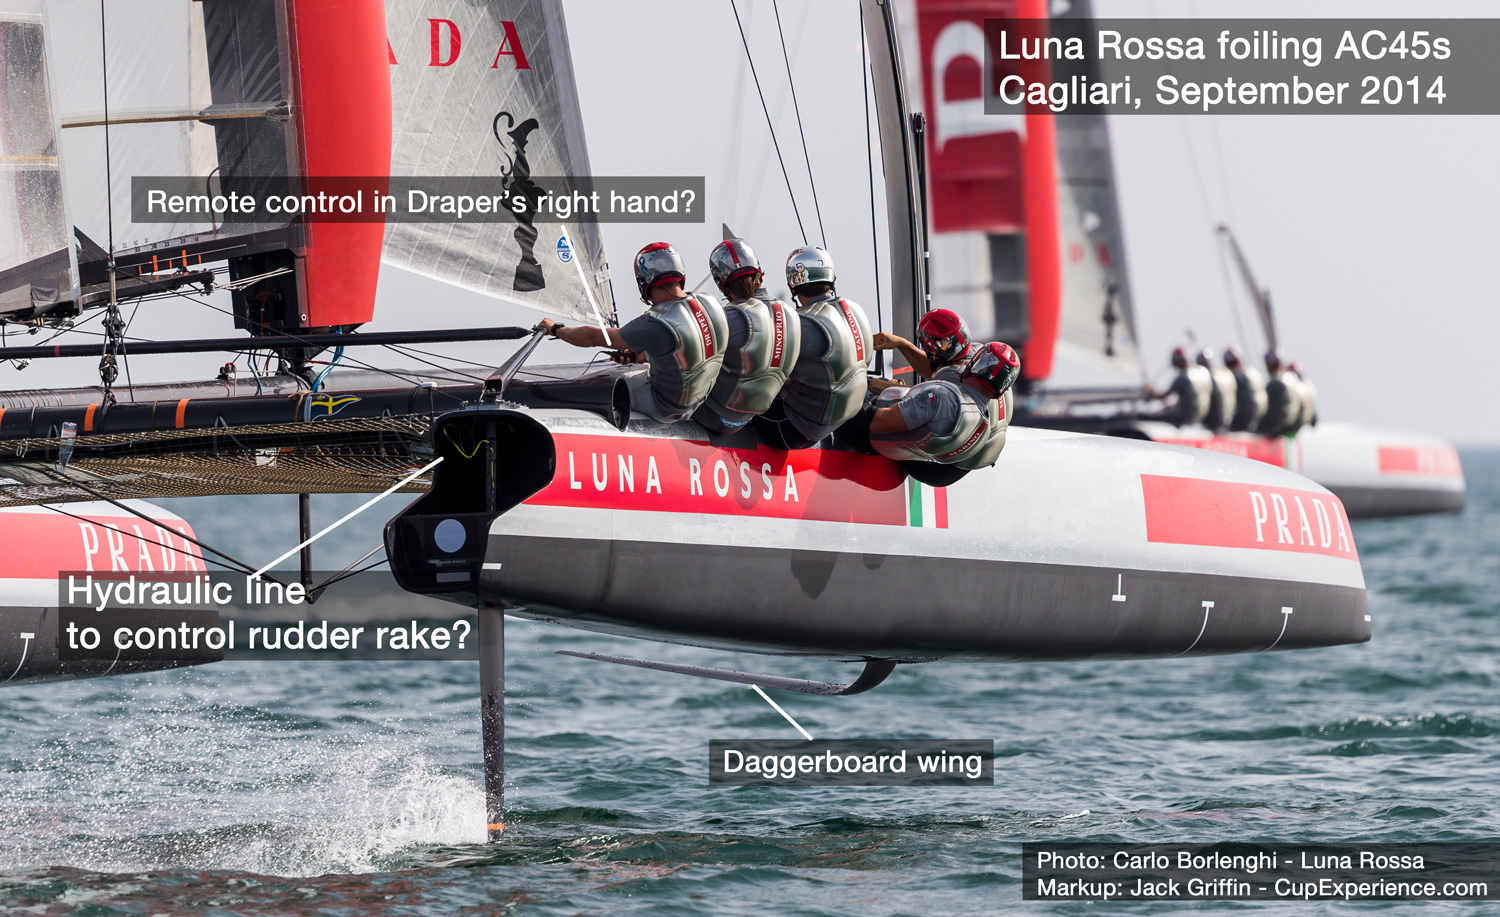 America's Cup  Luna Rossa running two boat testing with foiling AC45's